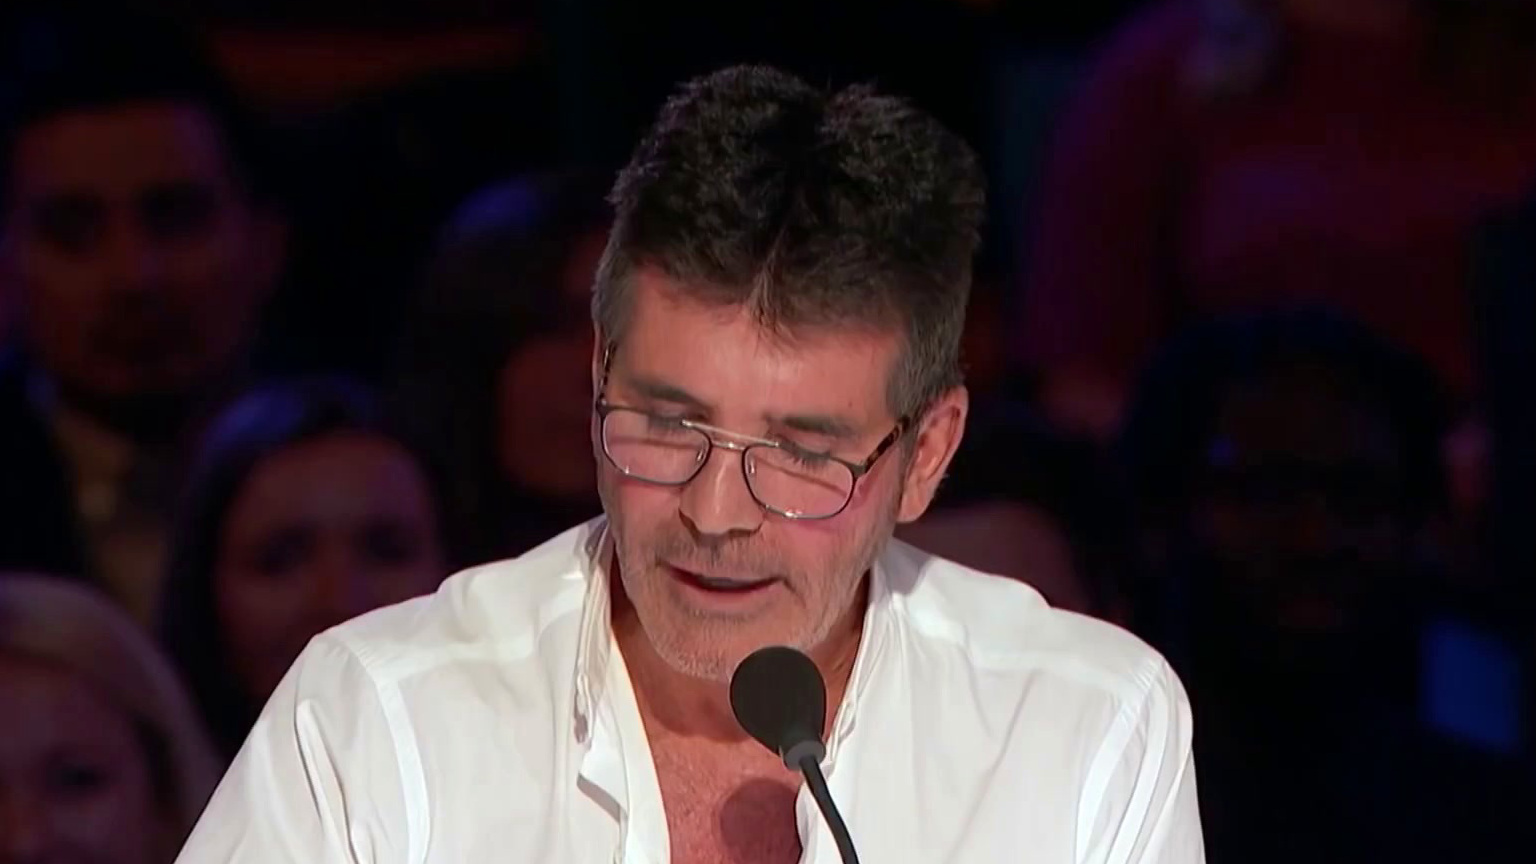 America's Got Talent: Roberta Battaglia And Archie Williams Chat About Making Agt History